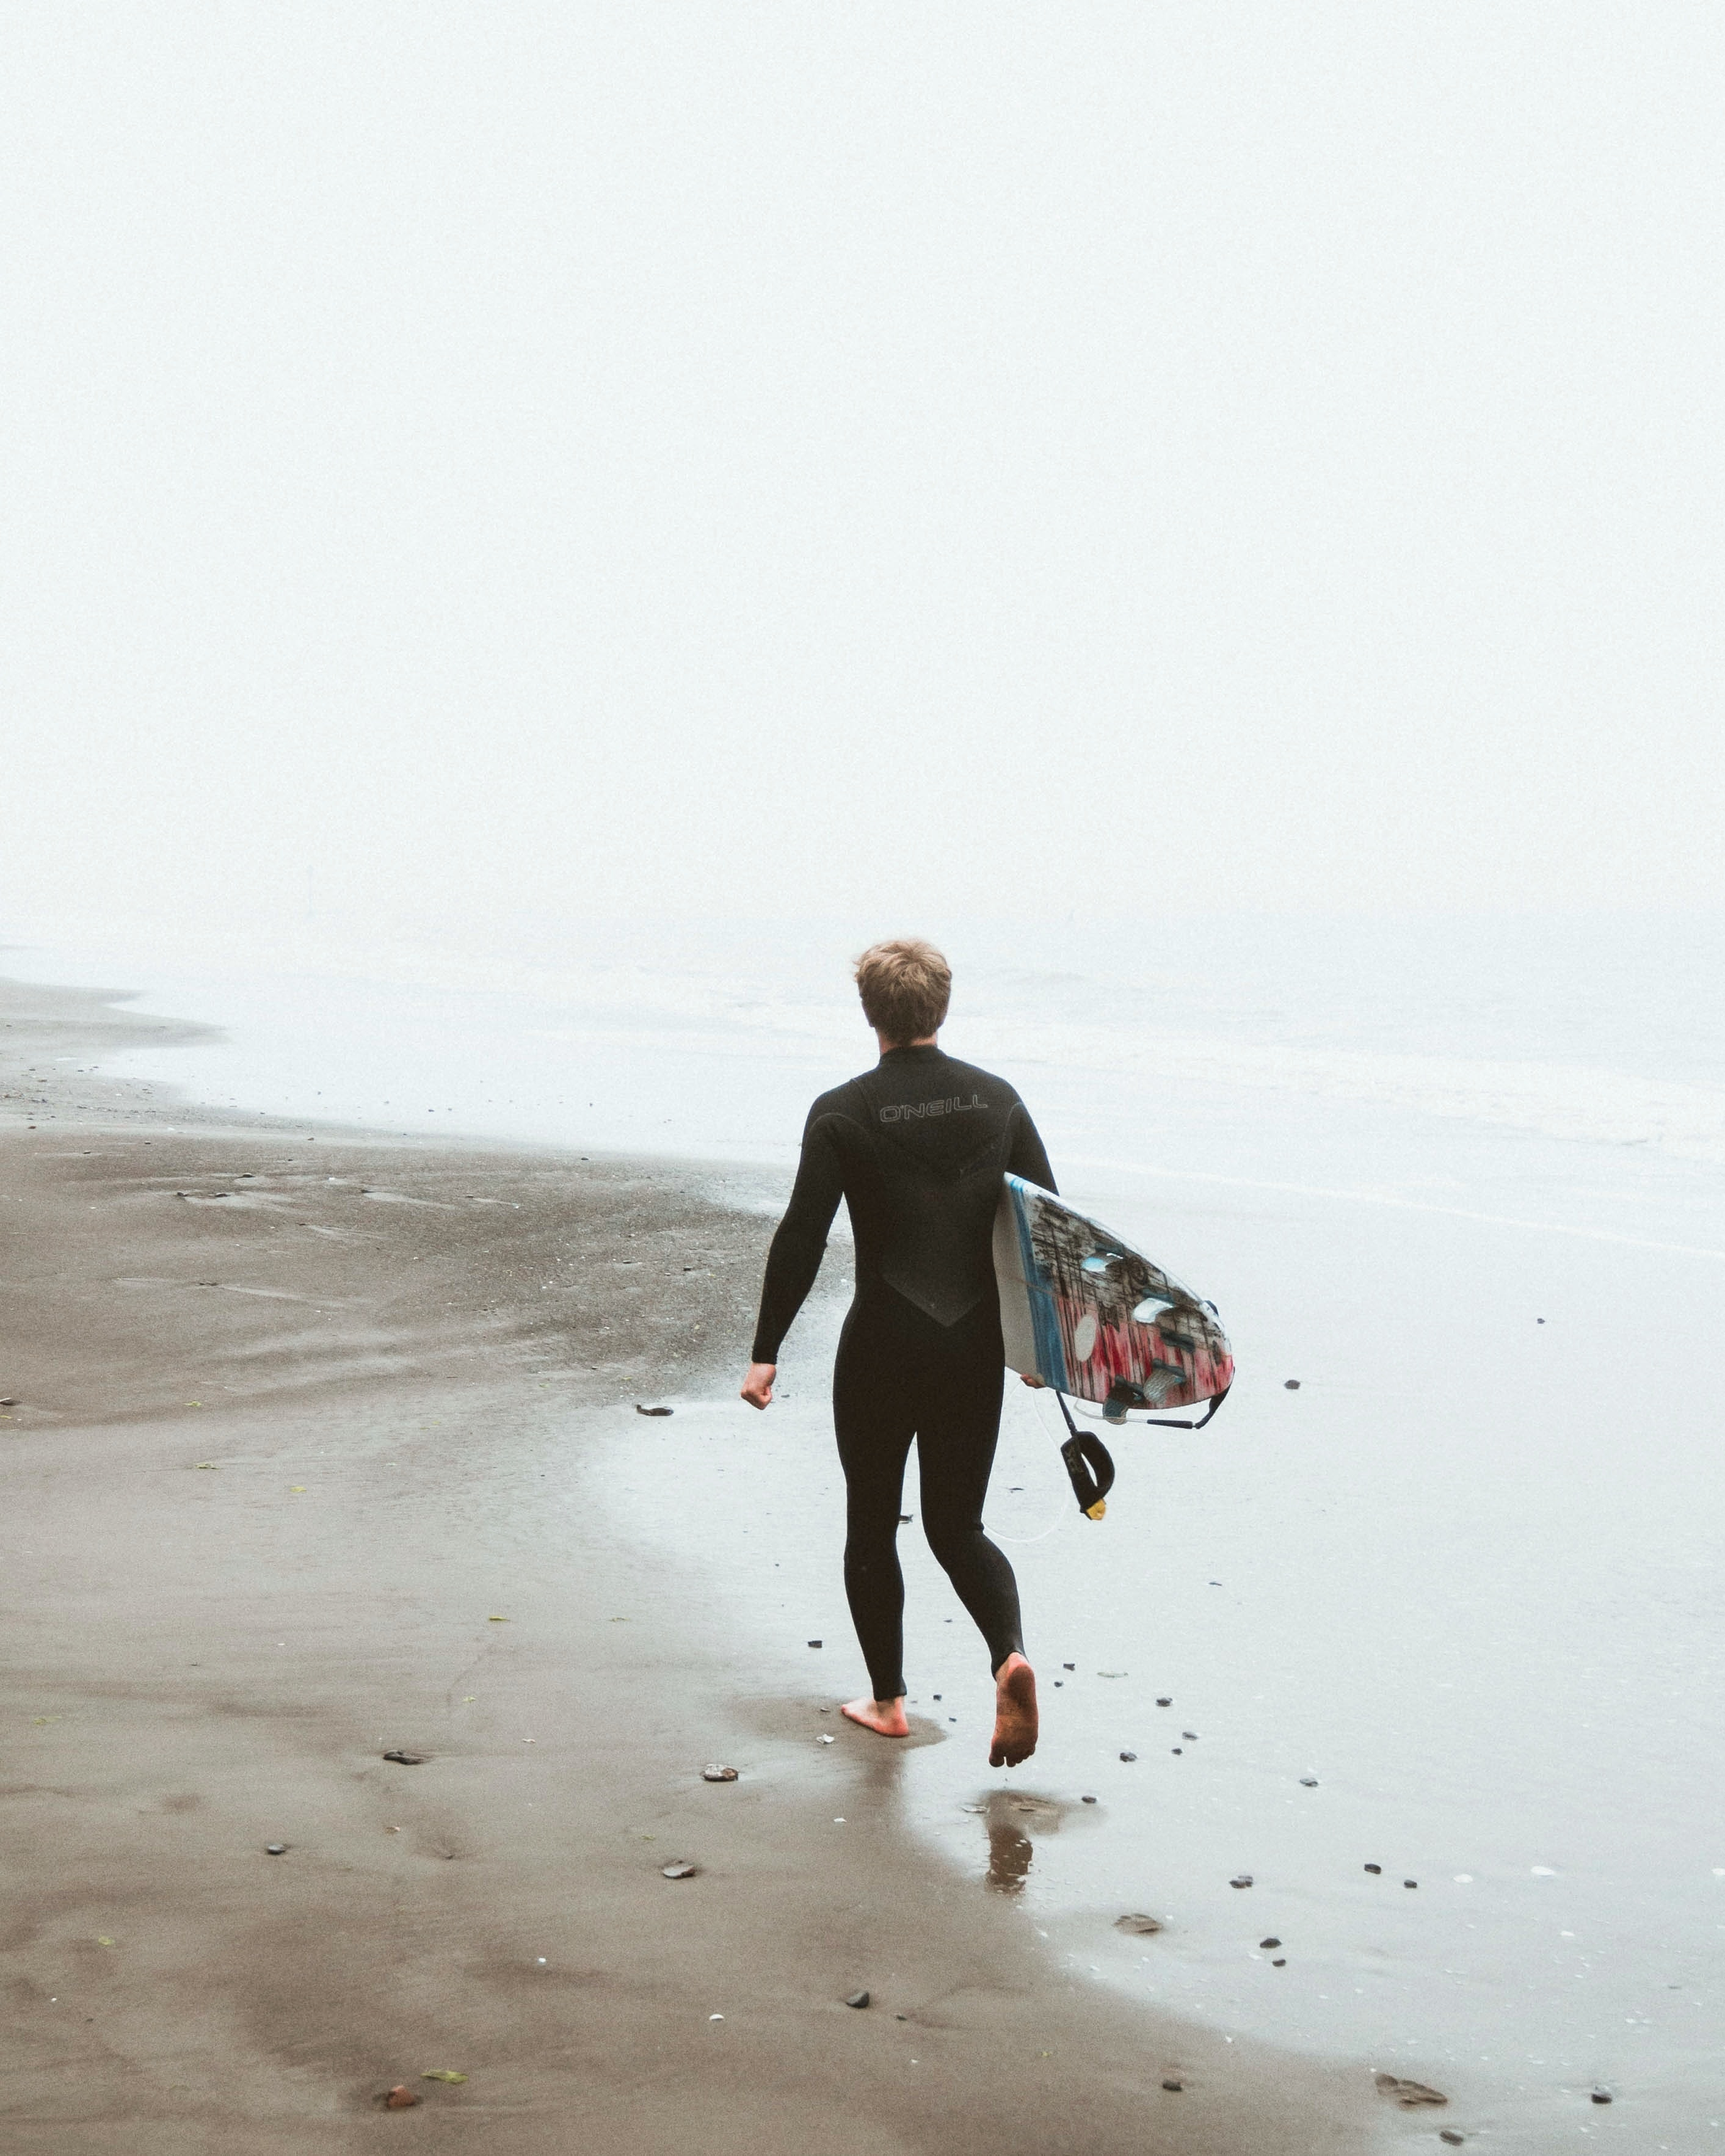 man walking on the beach carrying surfboard